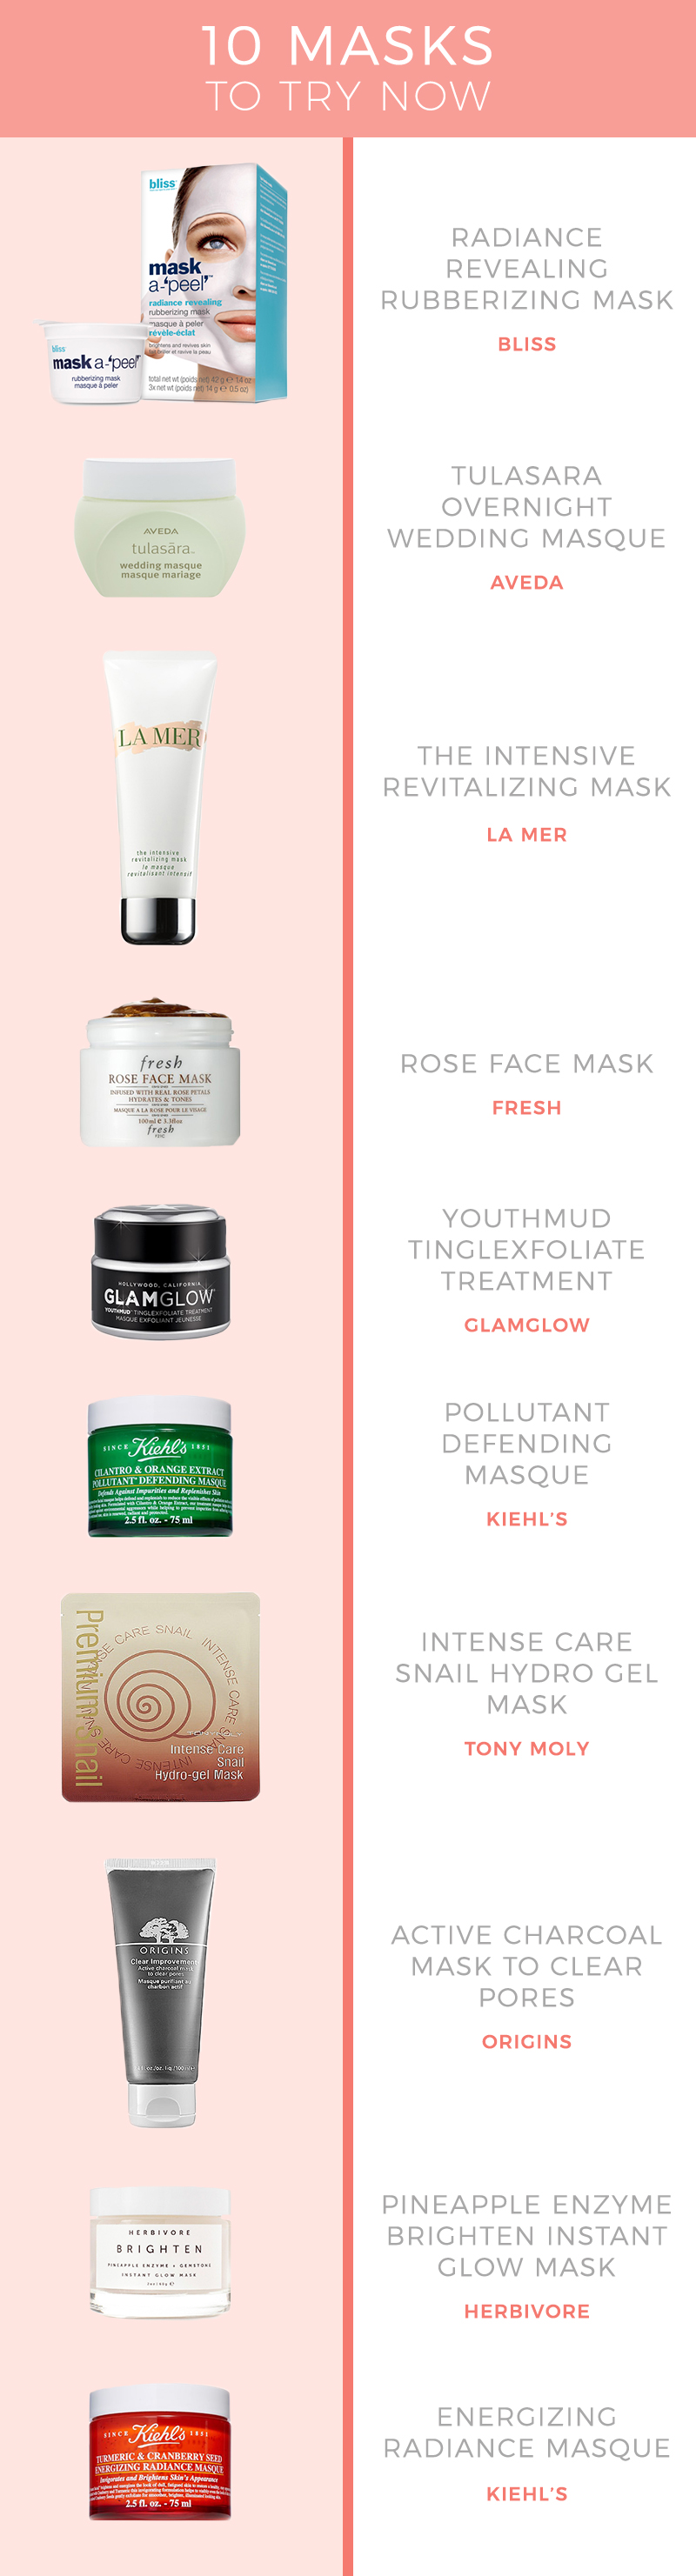 The best of beauty: which masks to try now.